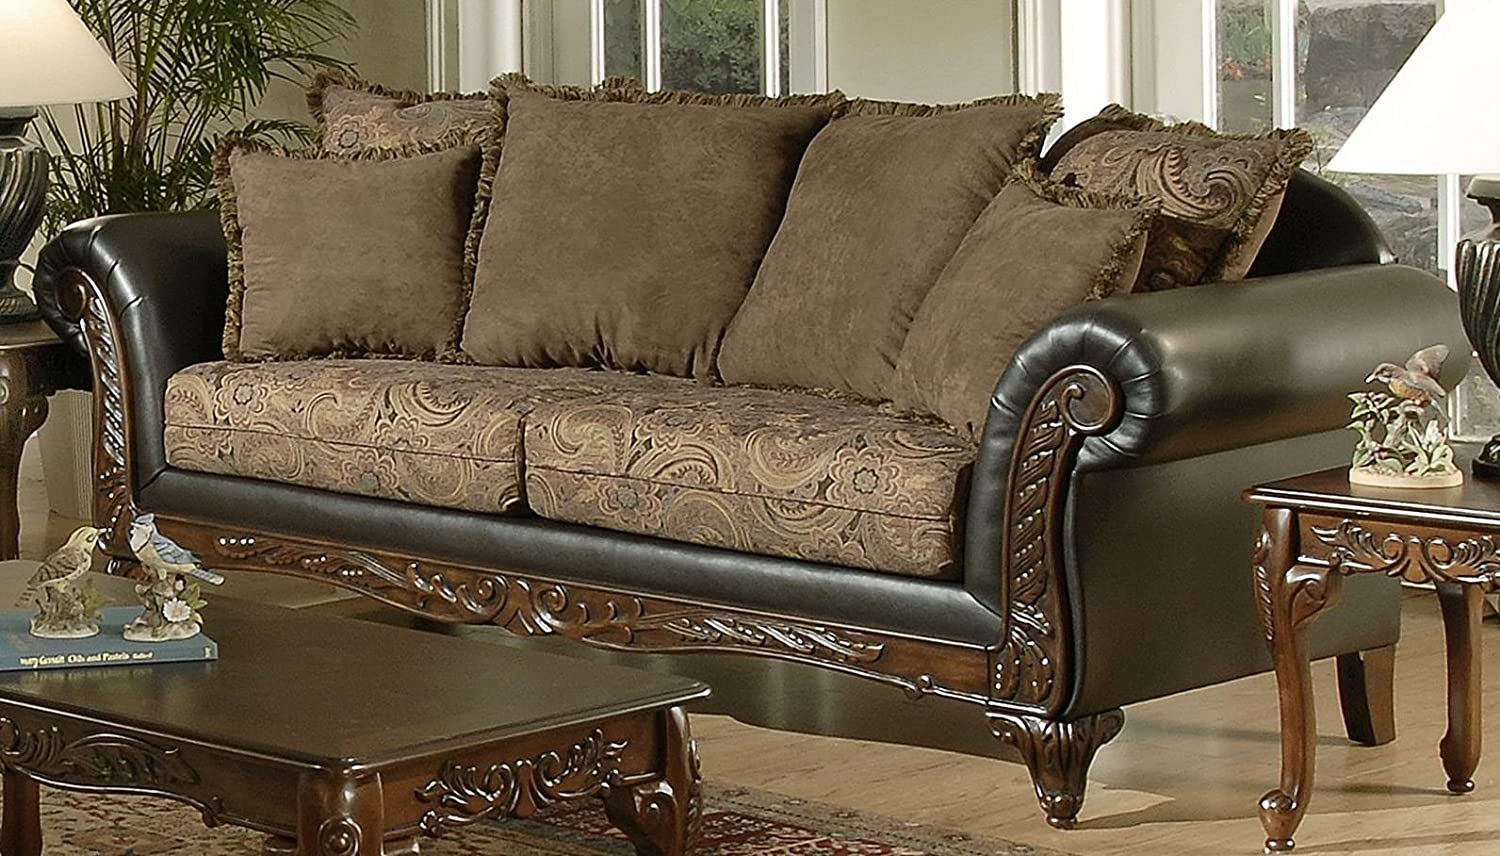 Chelsea Home Furniture Serta Ronalynn Sofa - Base Upholstered in San Marino Chocolate Poly Cotton Blend